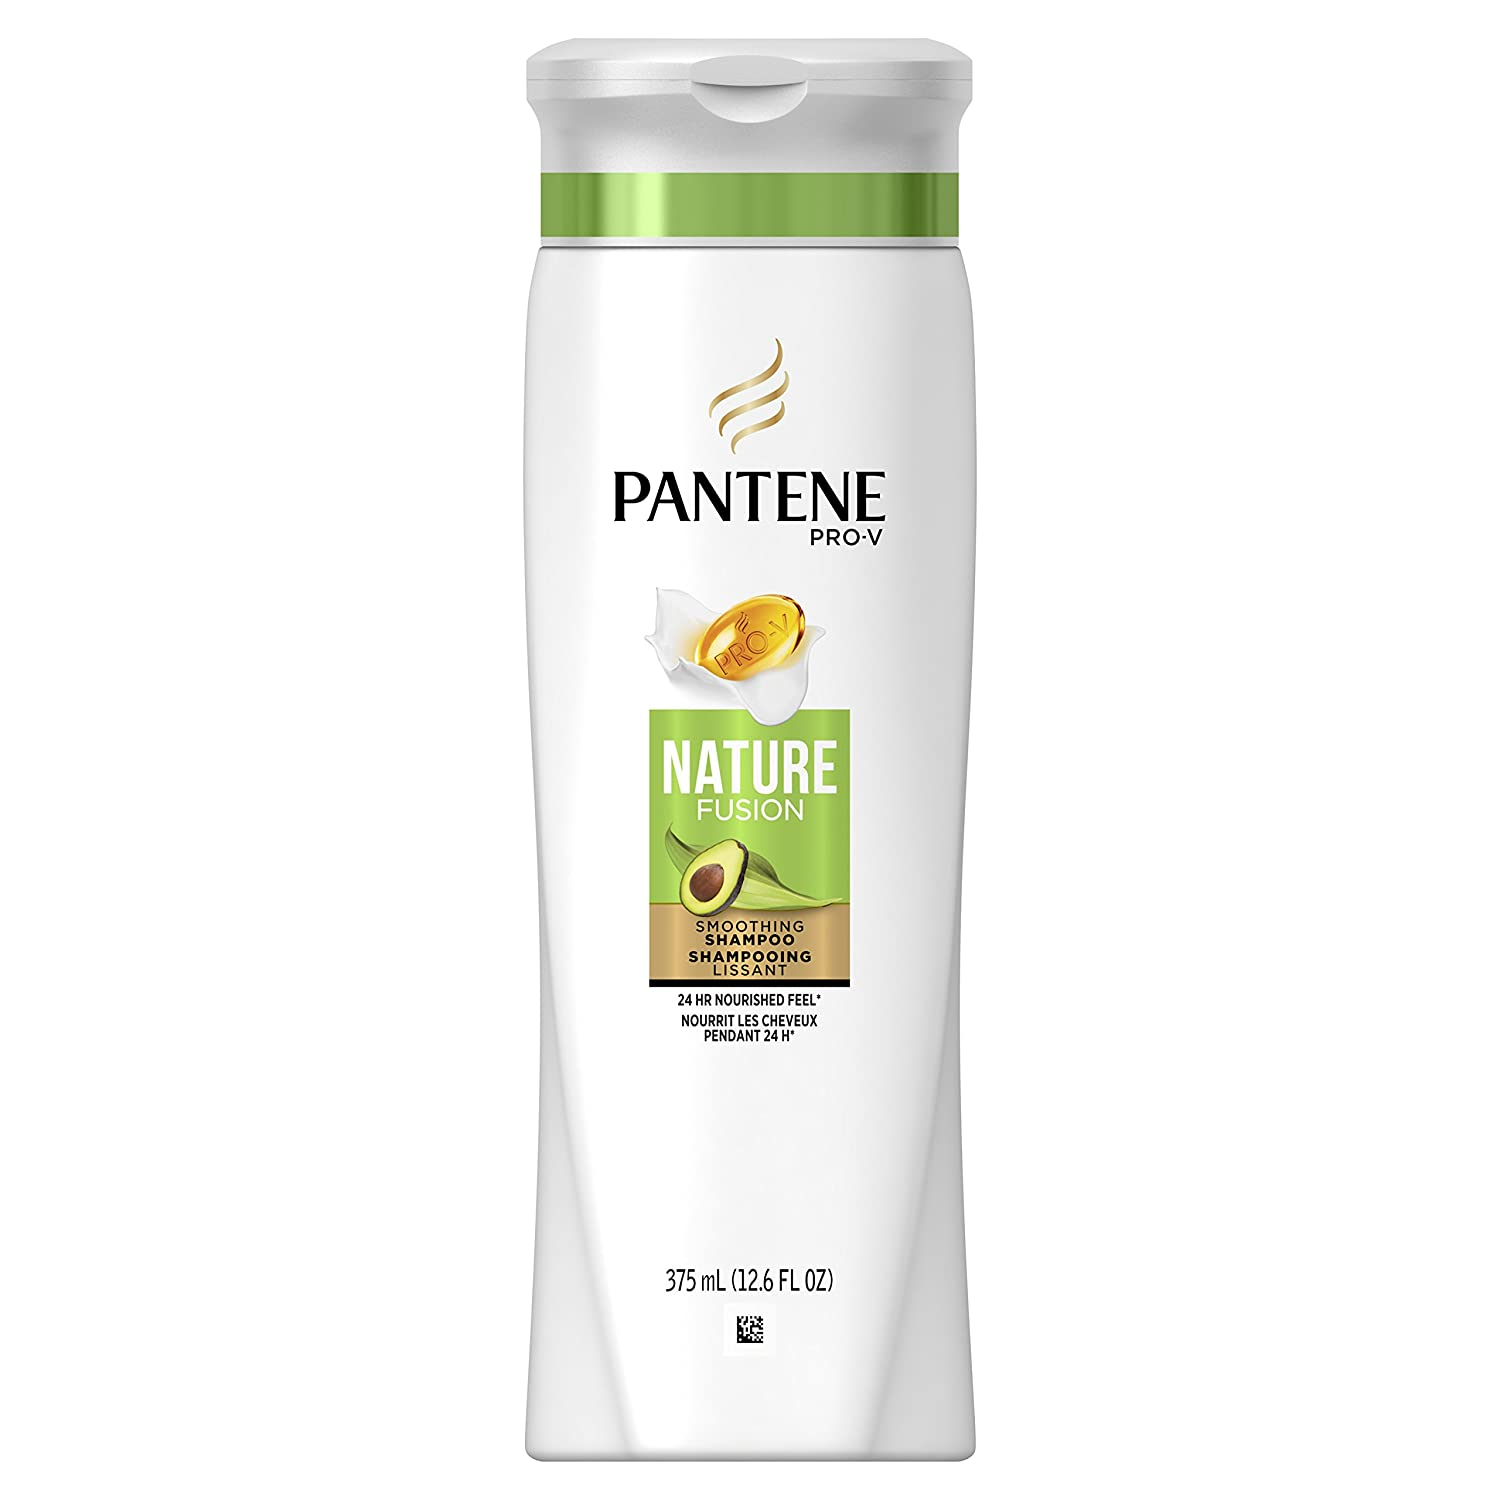 Pantene Pro-V Nature Fusion Smoothing Conditioner, 355 mL